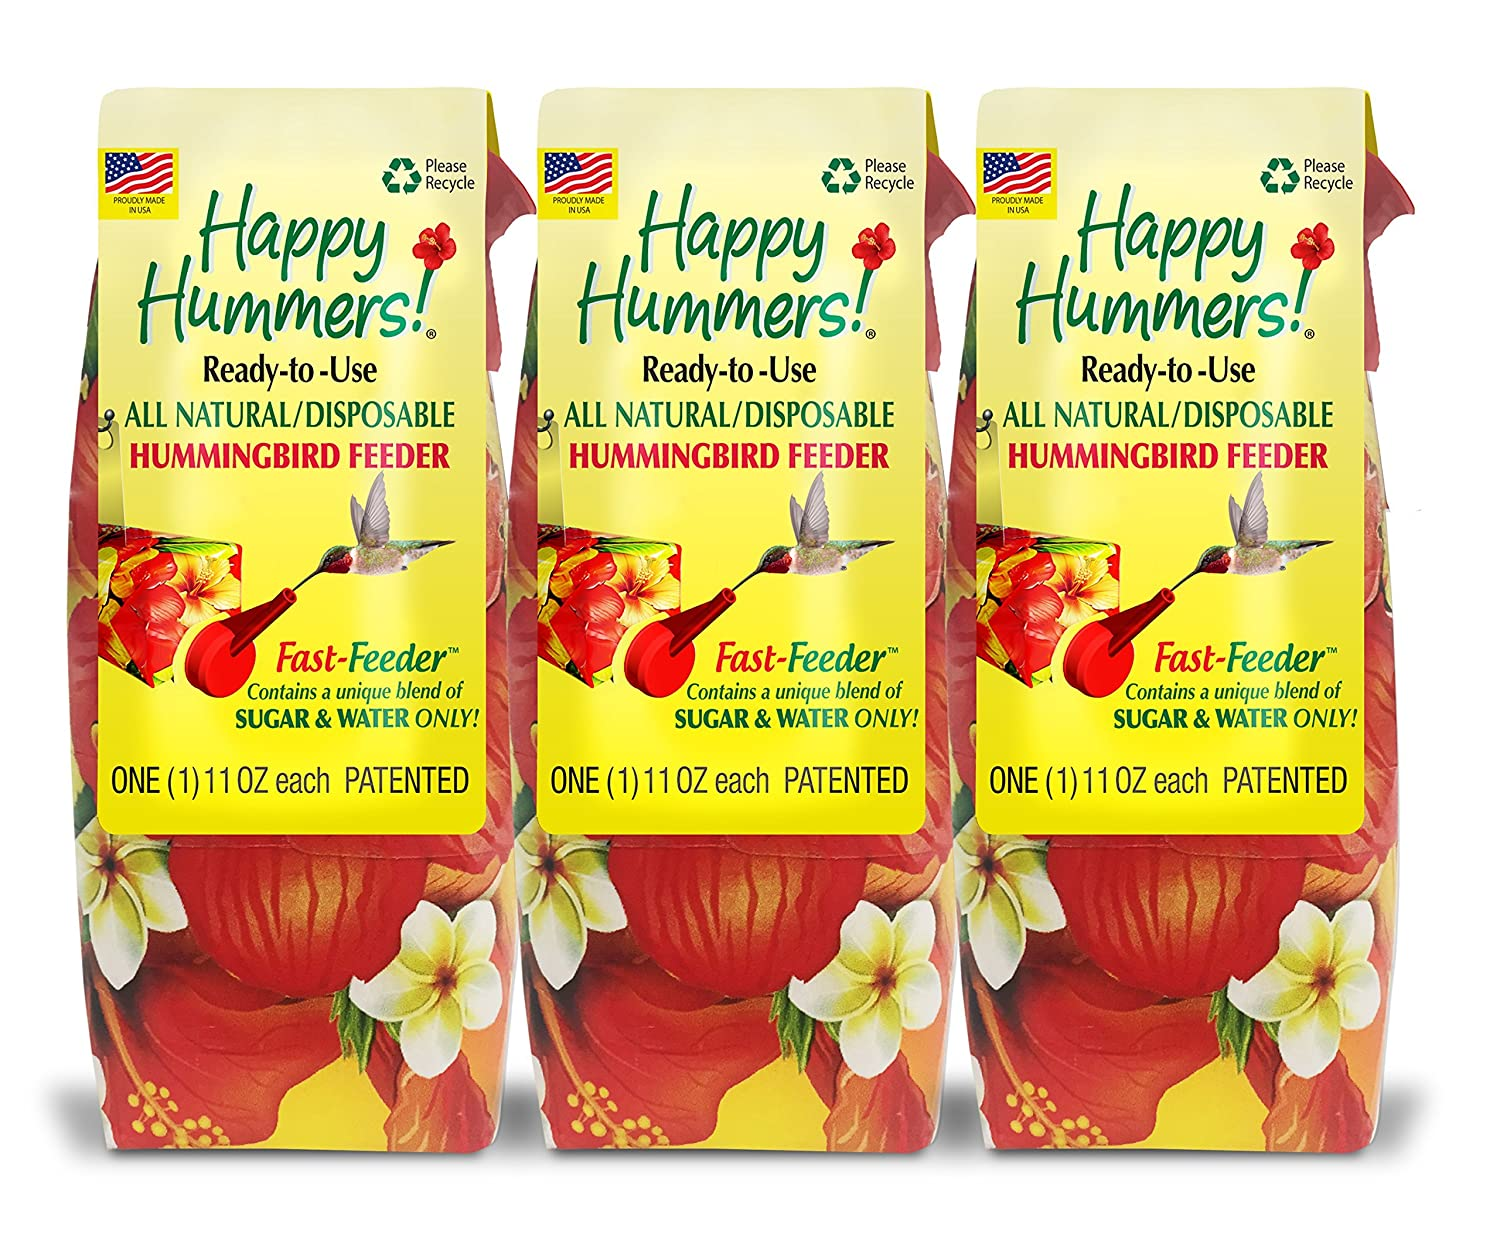 EZNectar All-Natural, 3-pack, Disposable, Ready-to-Use, HummingbirdFast-Feeder (3) 11 Fl Oz Each 864349000097